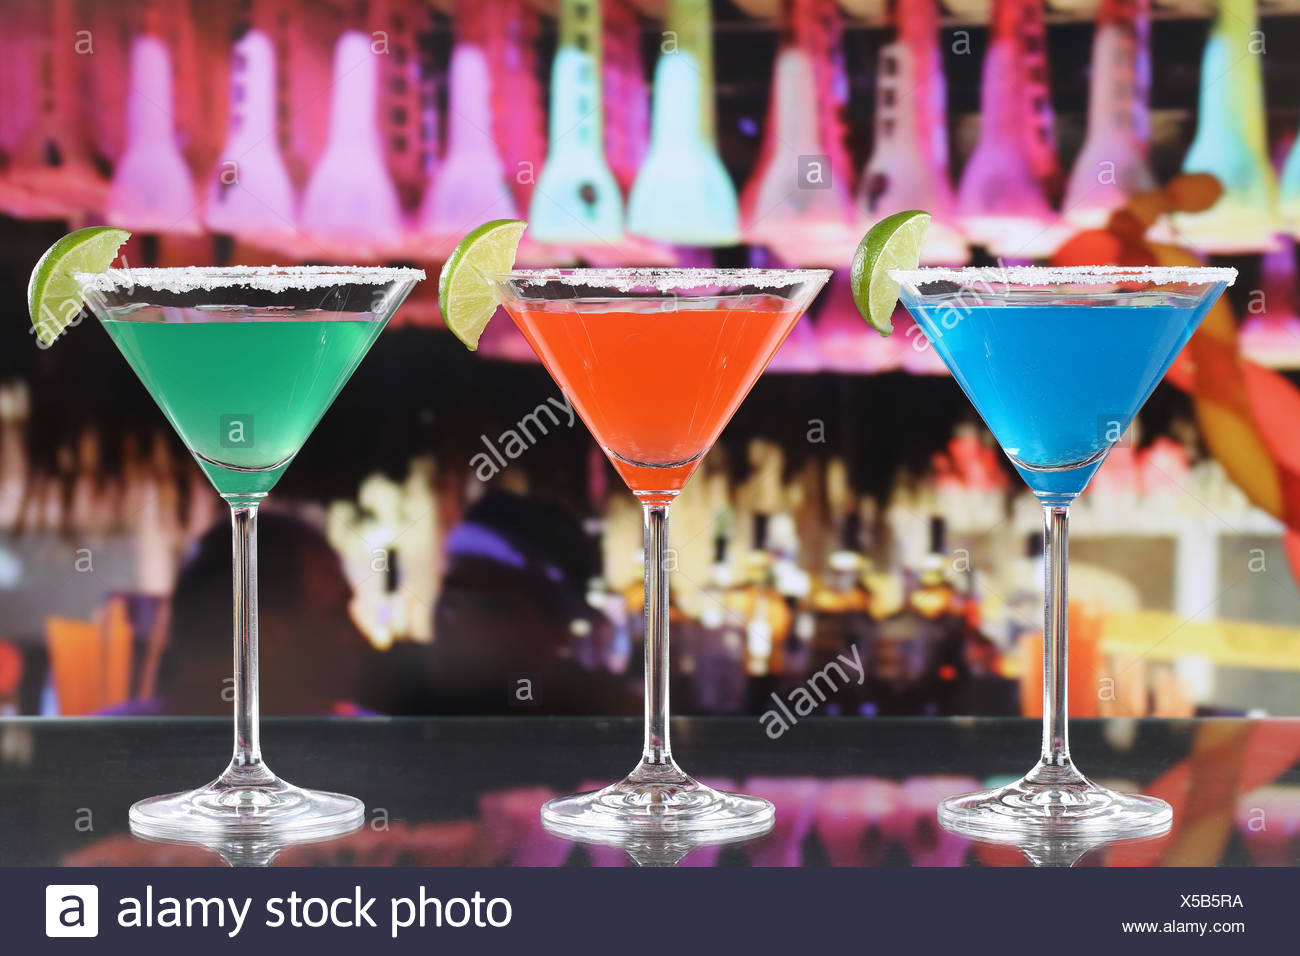 Bunte Cocktails in Martini Gläsern in einer Bar - Stock Image